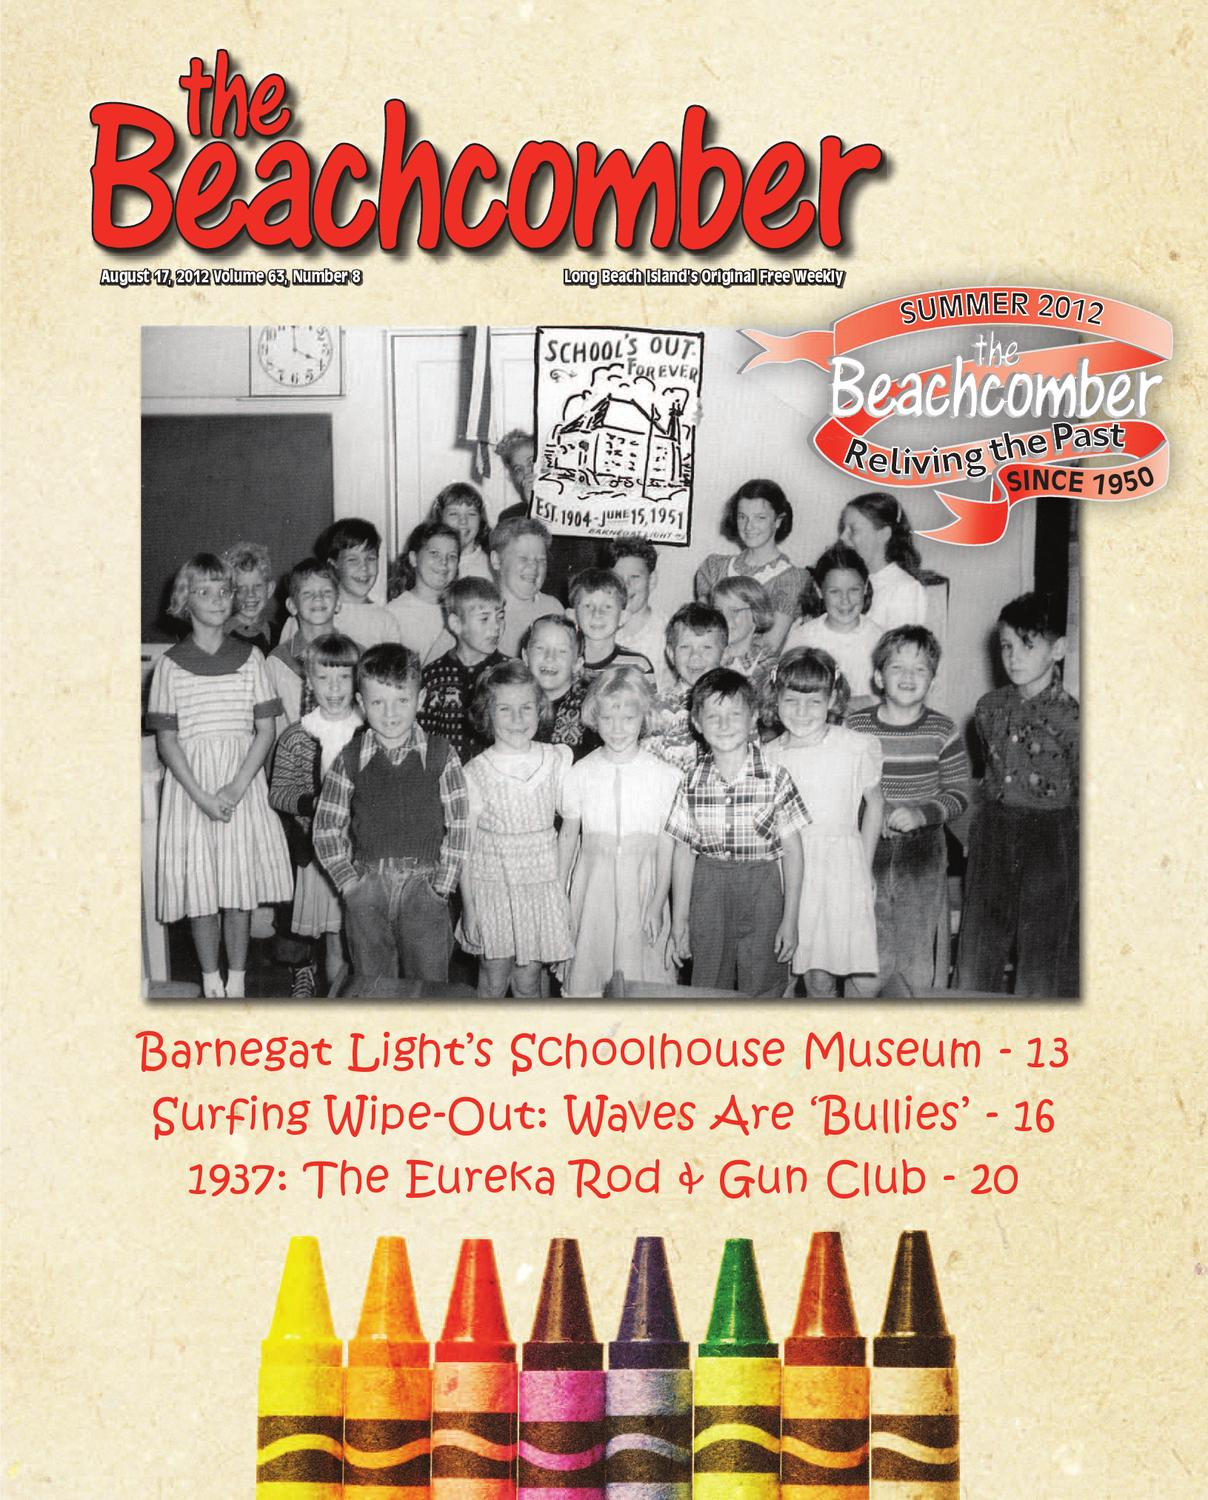 The Beachcomber August 17 2012 Vol 63 No 8 By The Sandpaper Issuu